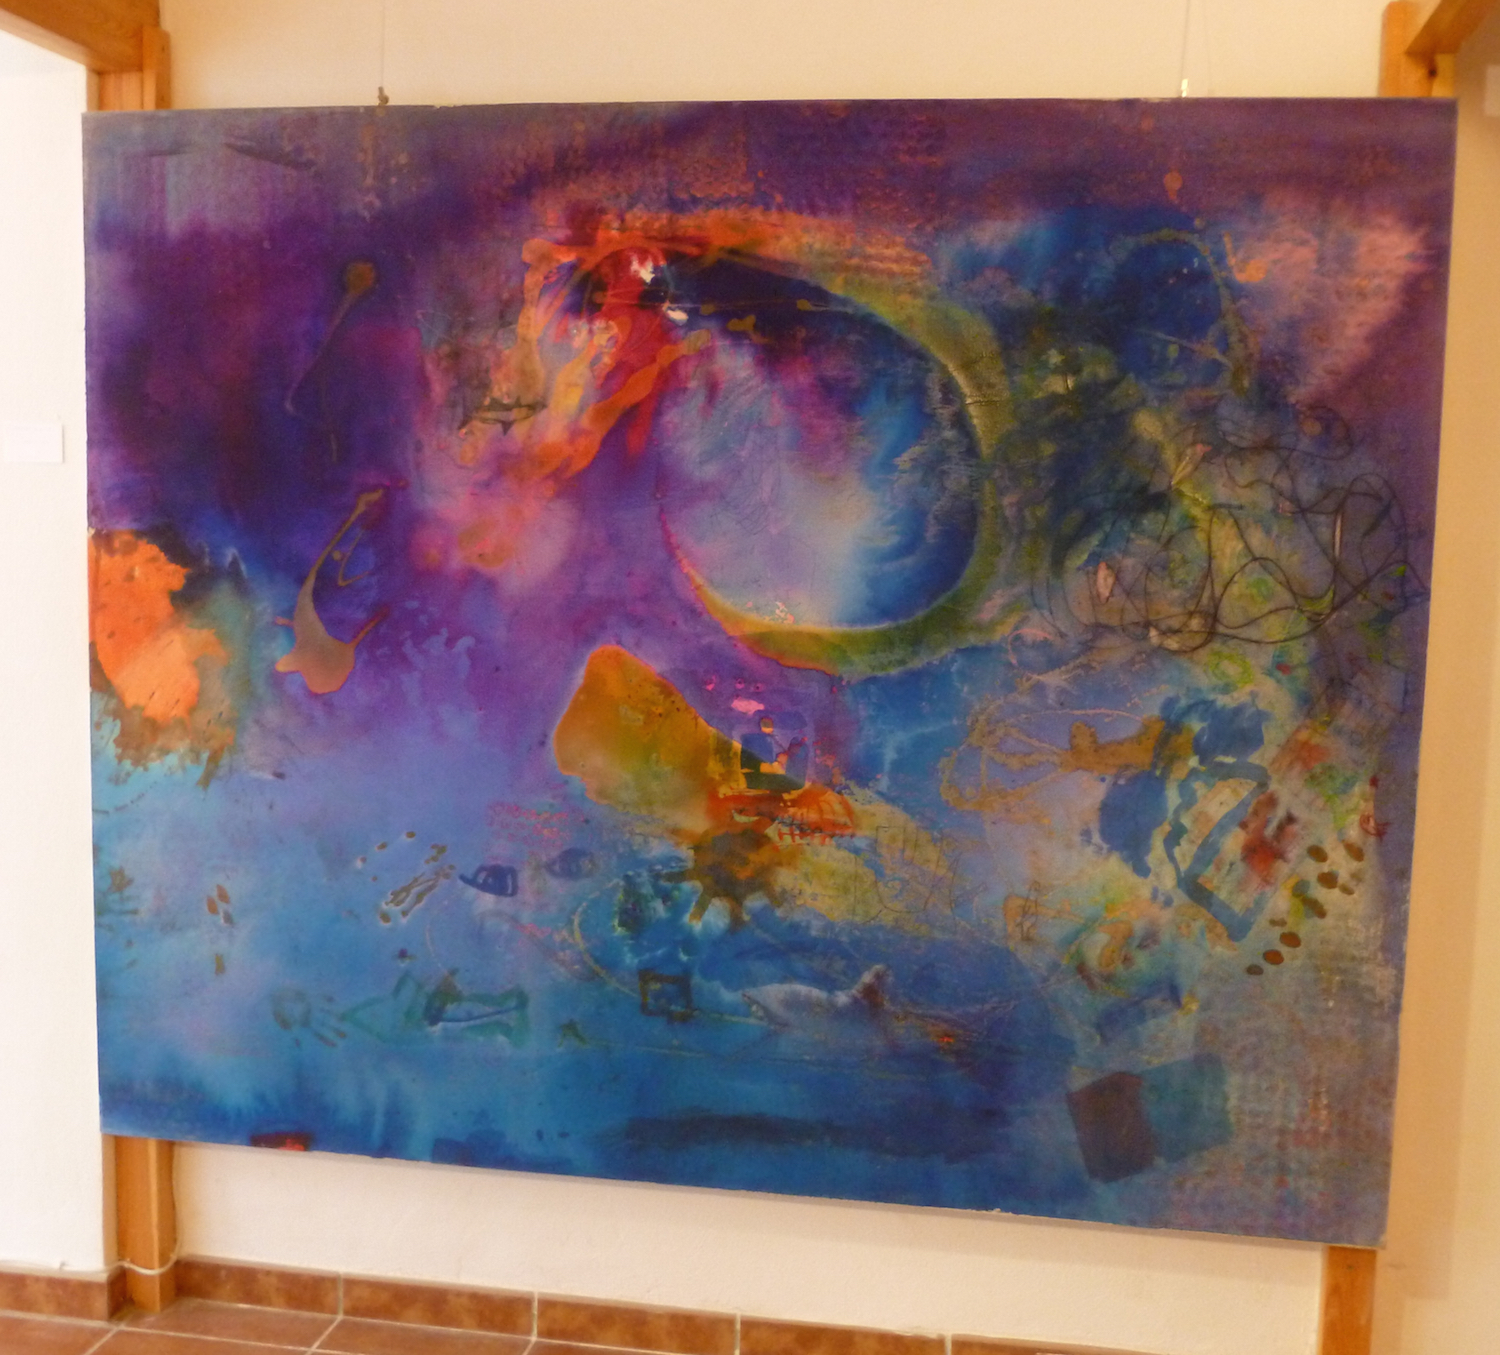 Dinner Party  mixed media on canvas 200 x 150 cm  Corinna Boughton